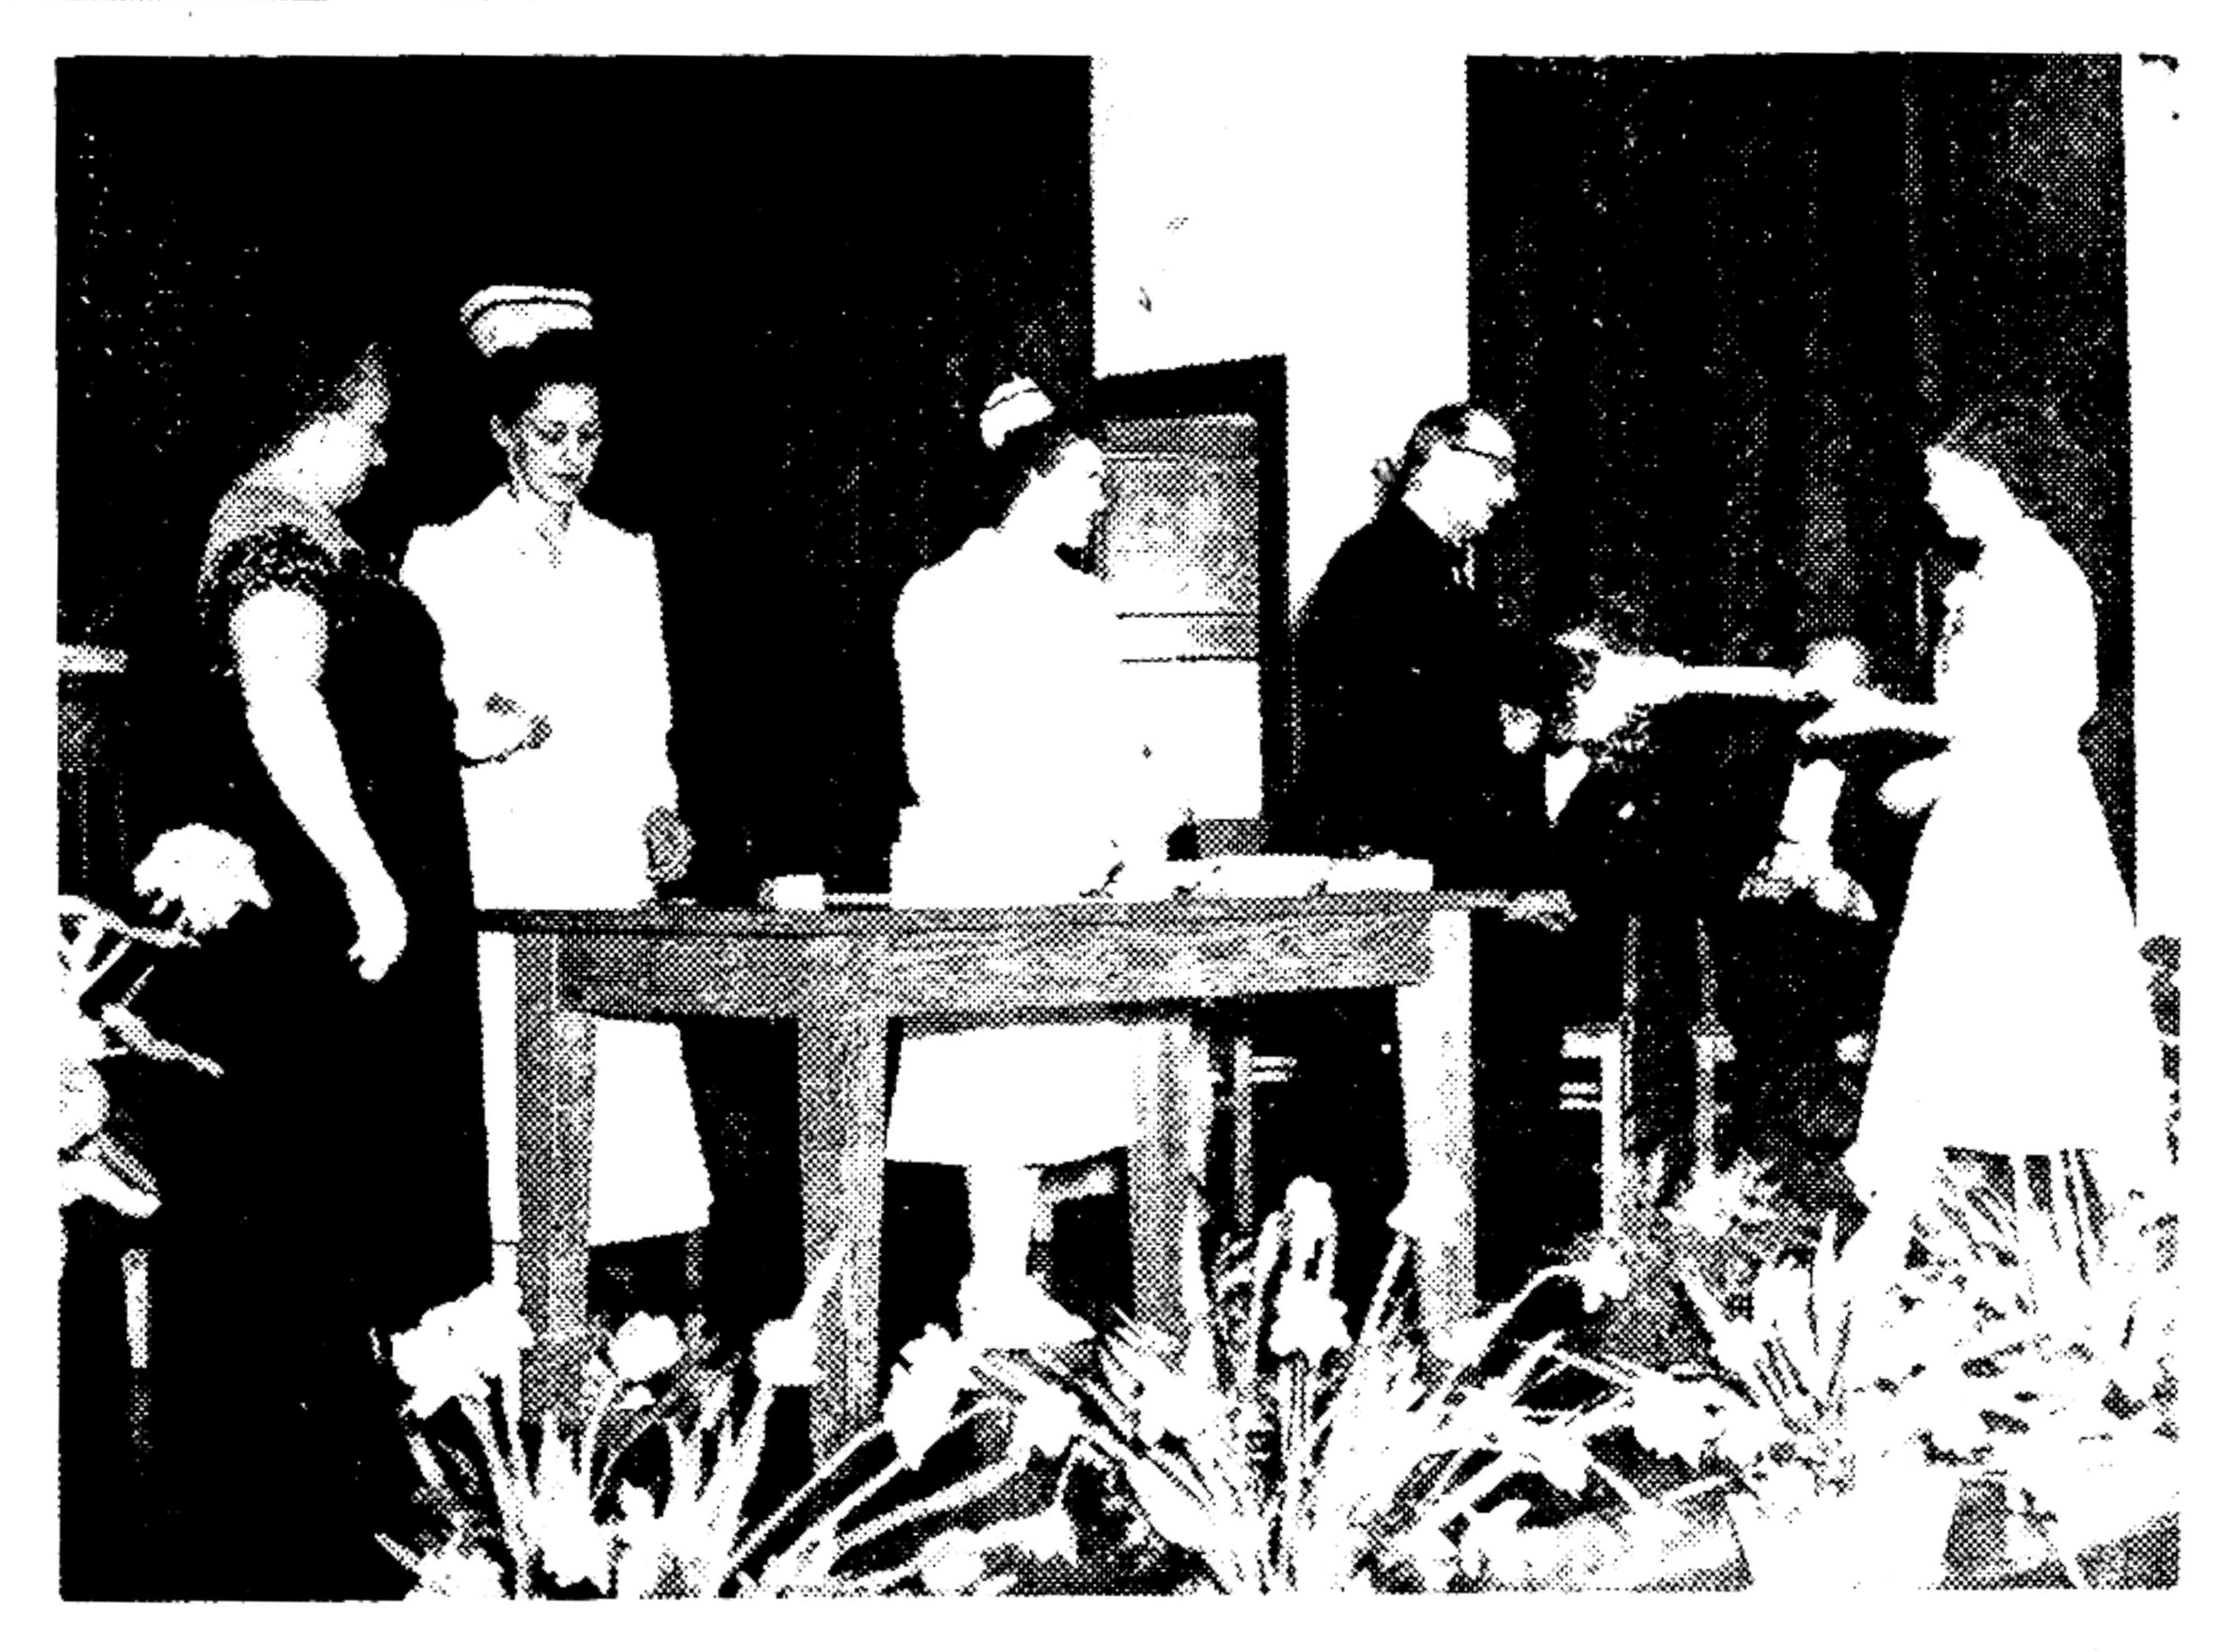 old black and white photo of nursing graduation scene with student receiving diploma on stage